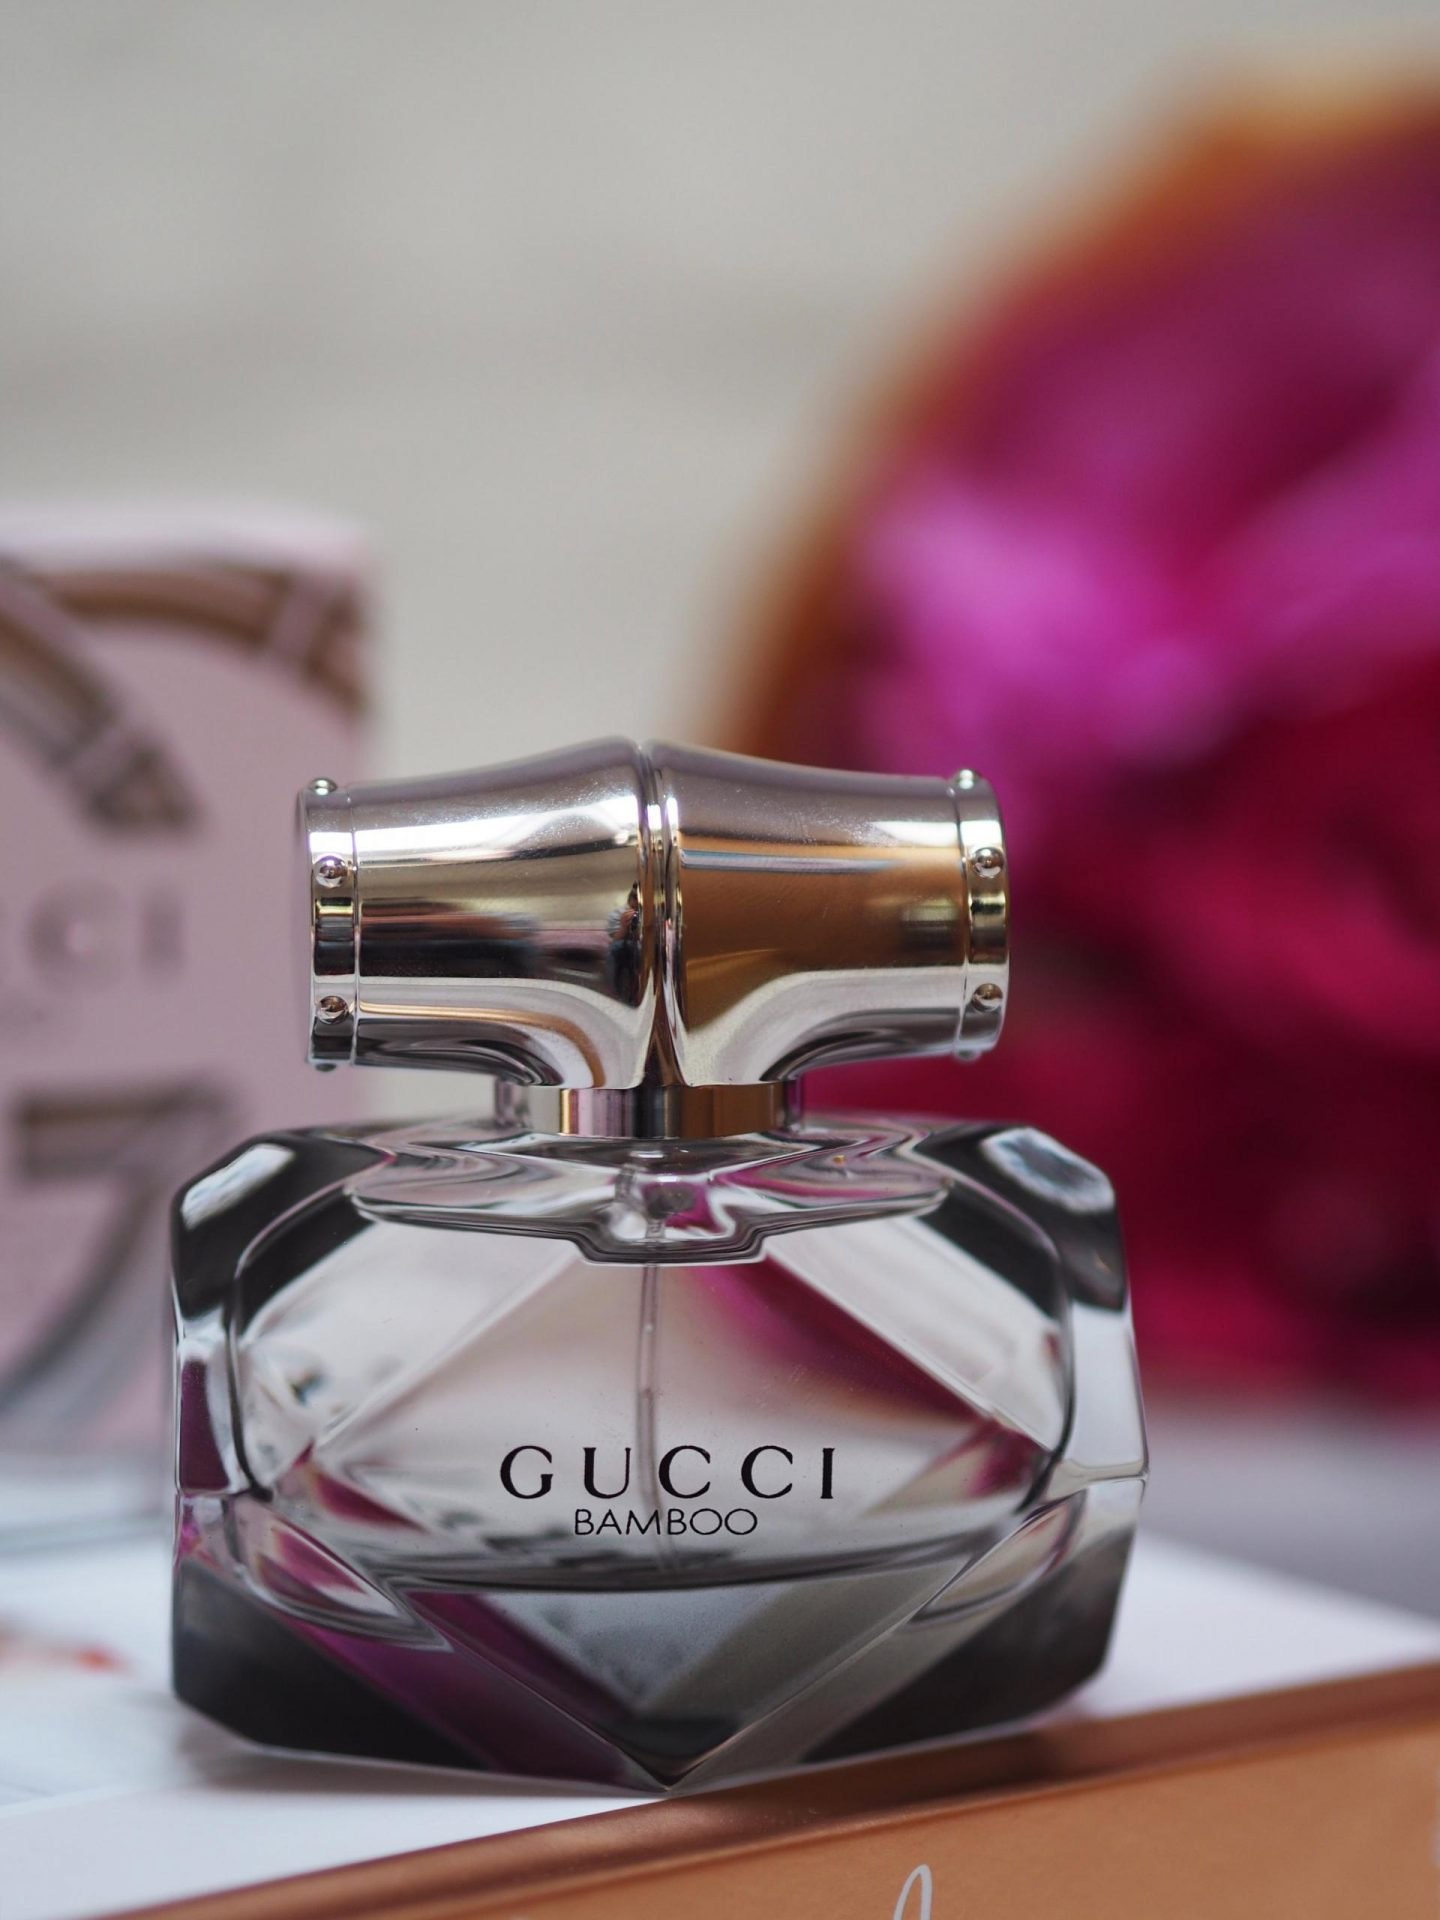 gucci-bamboo-fragrance-review-rachel-nicole-uk-beauty-blogger